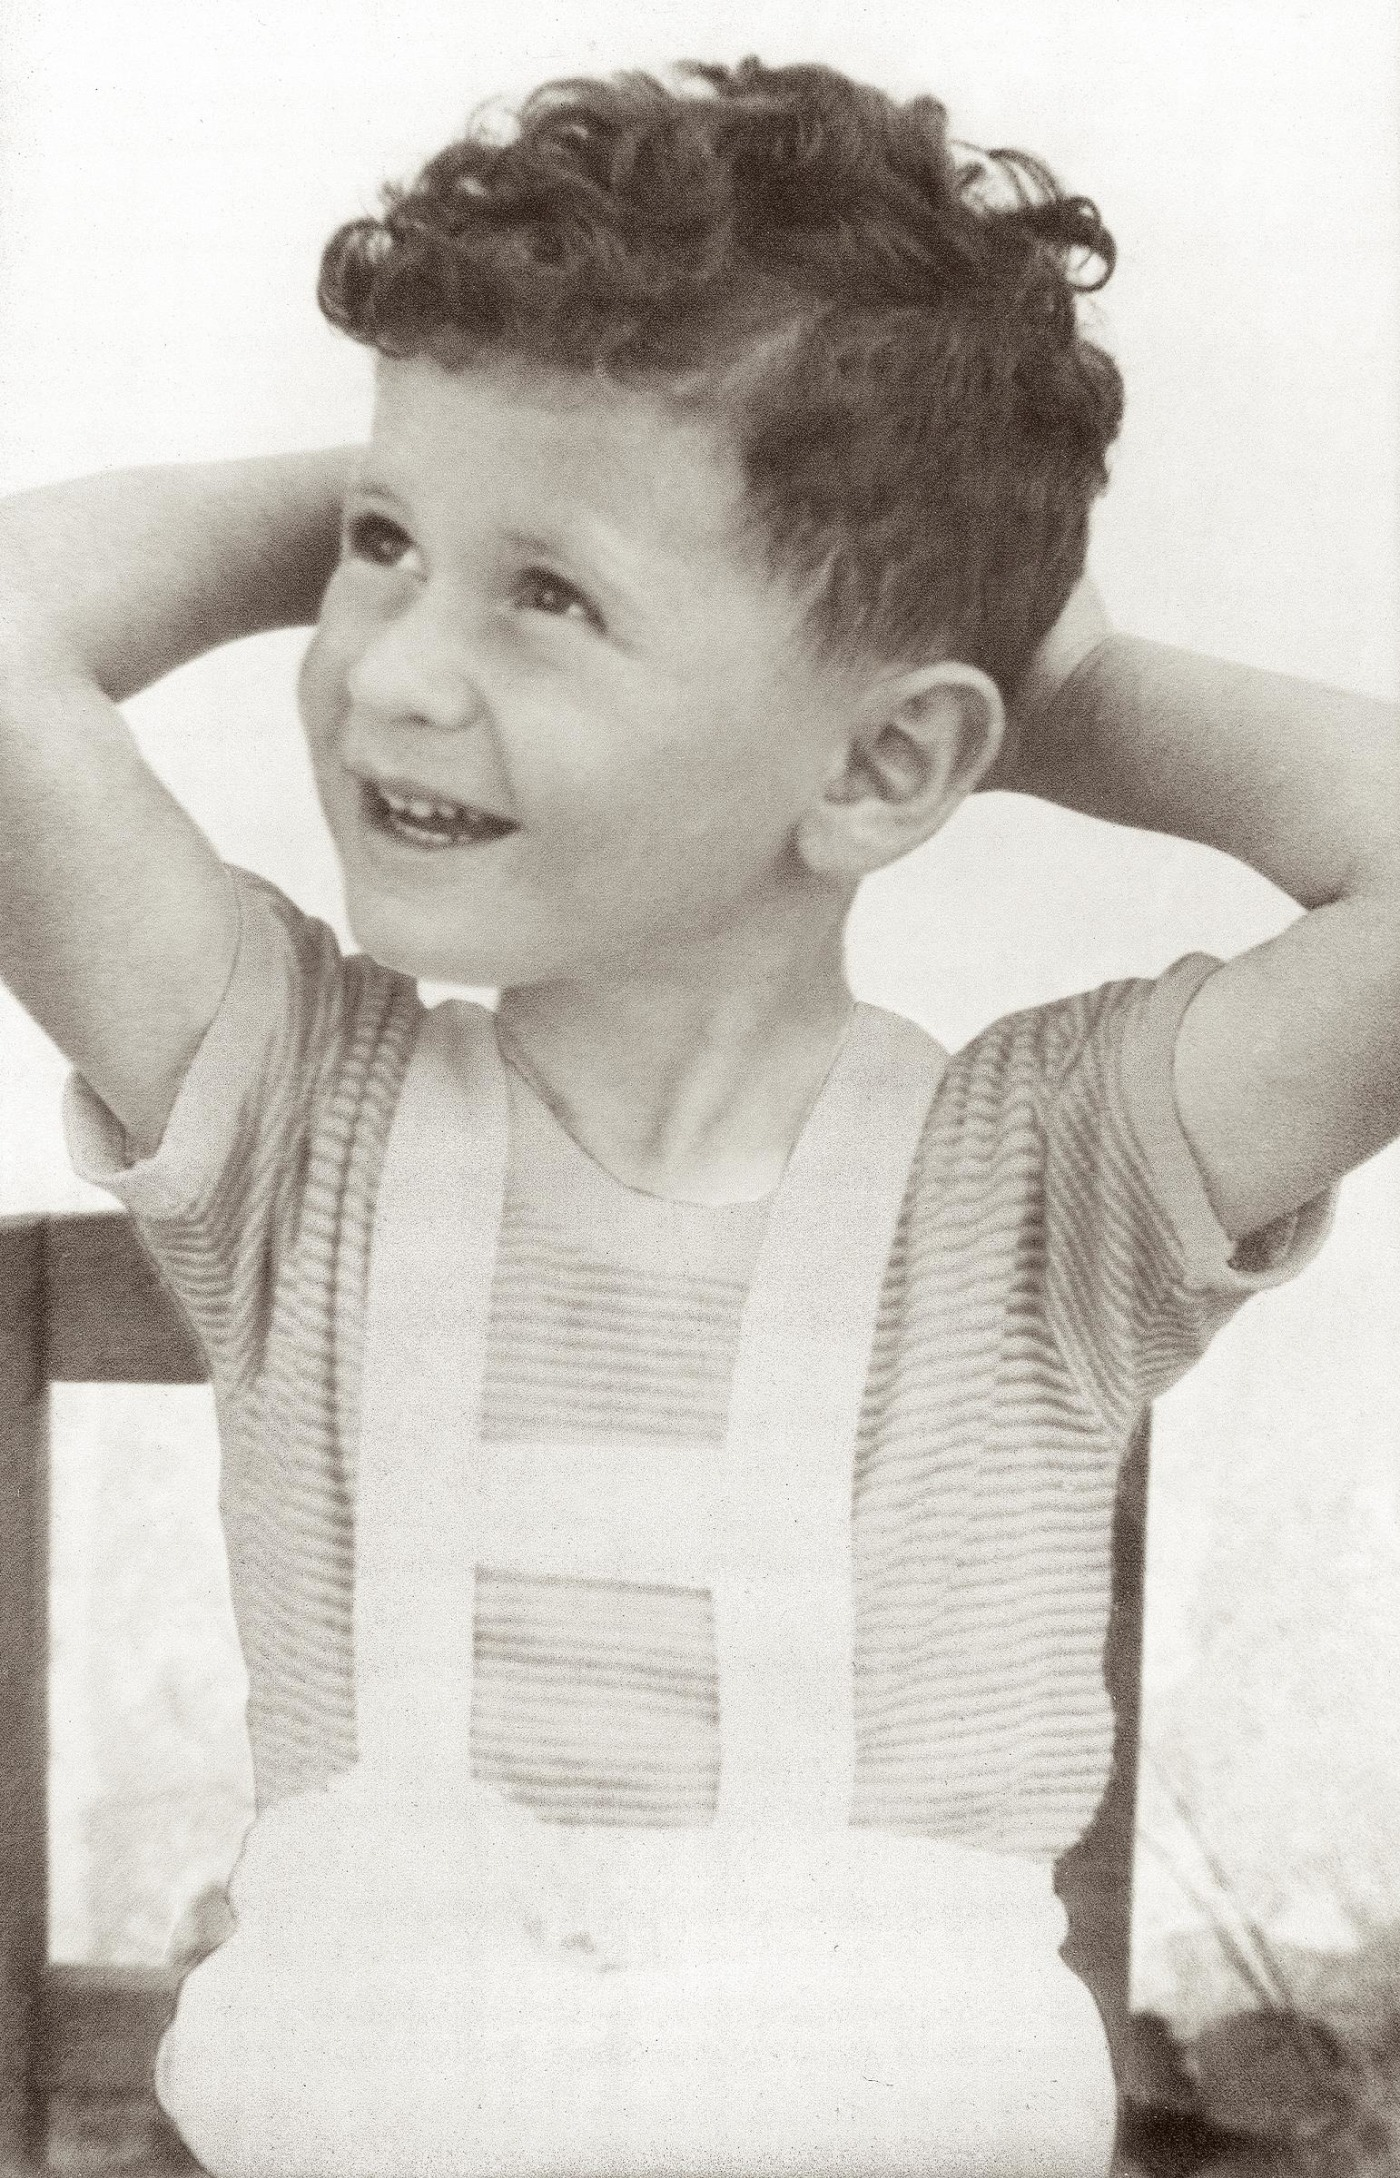 Schlessinger as a young boy